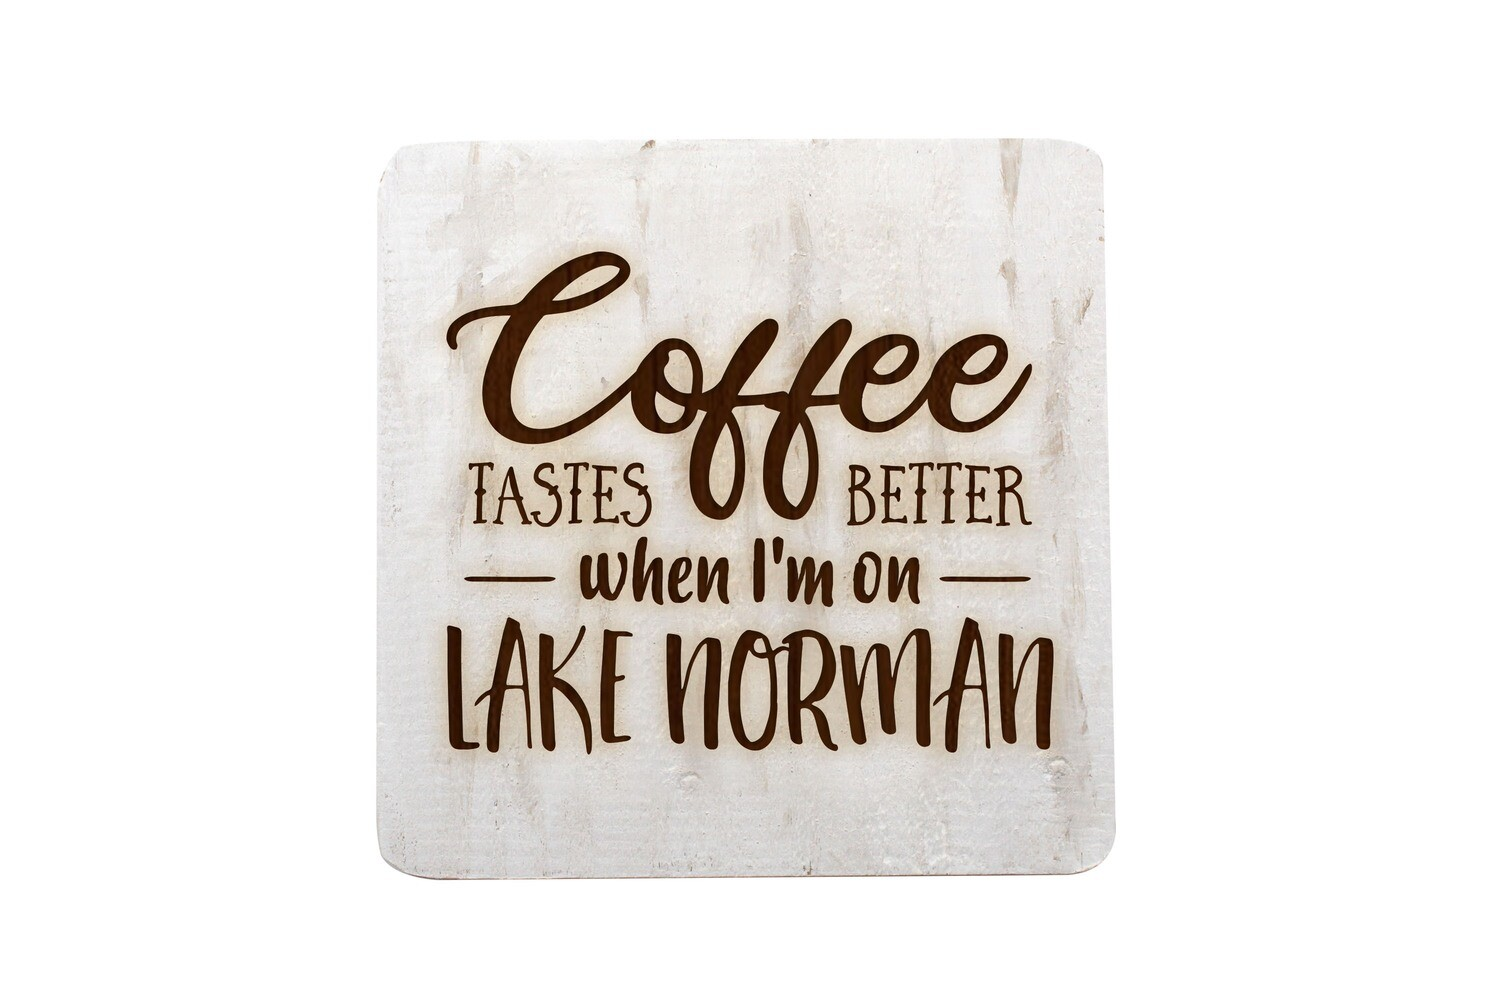 Coffee Tastes better when I'm on Lake Norman Hand-Painted Wood Coaster Set